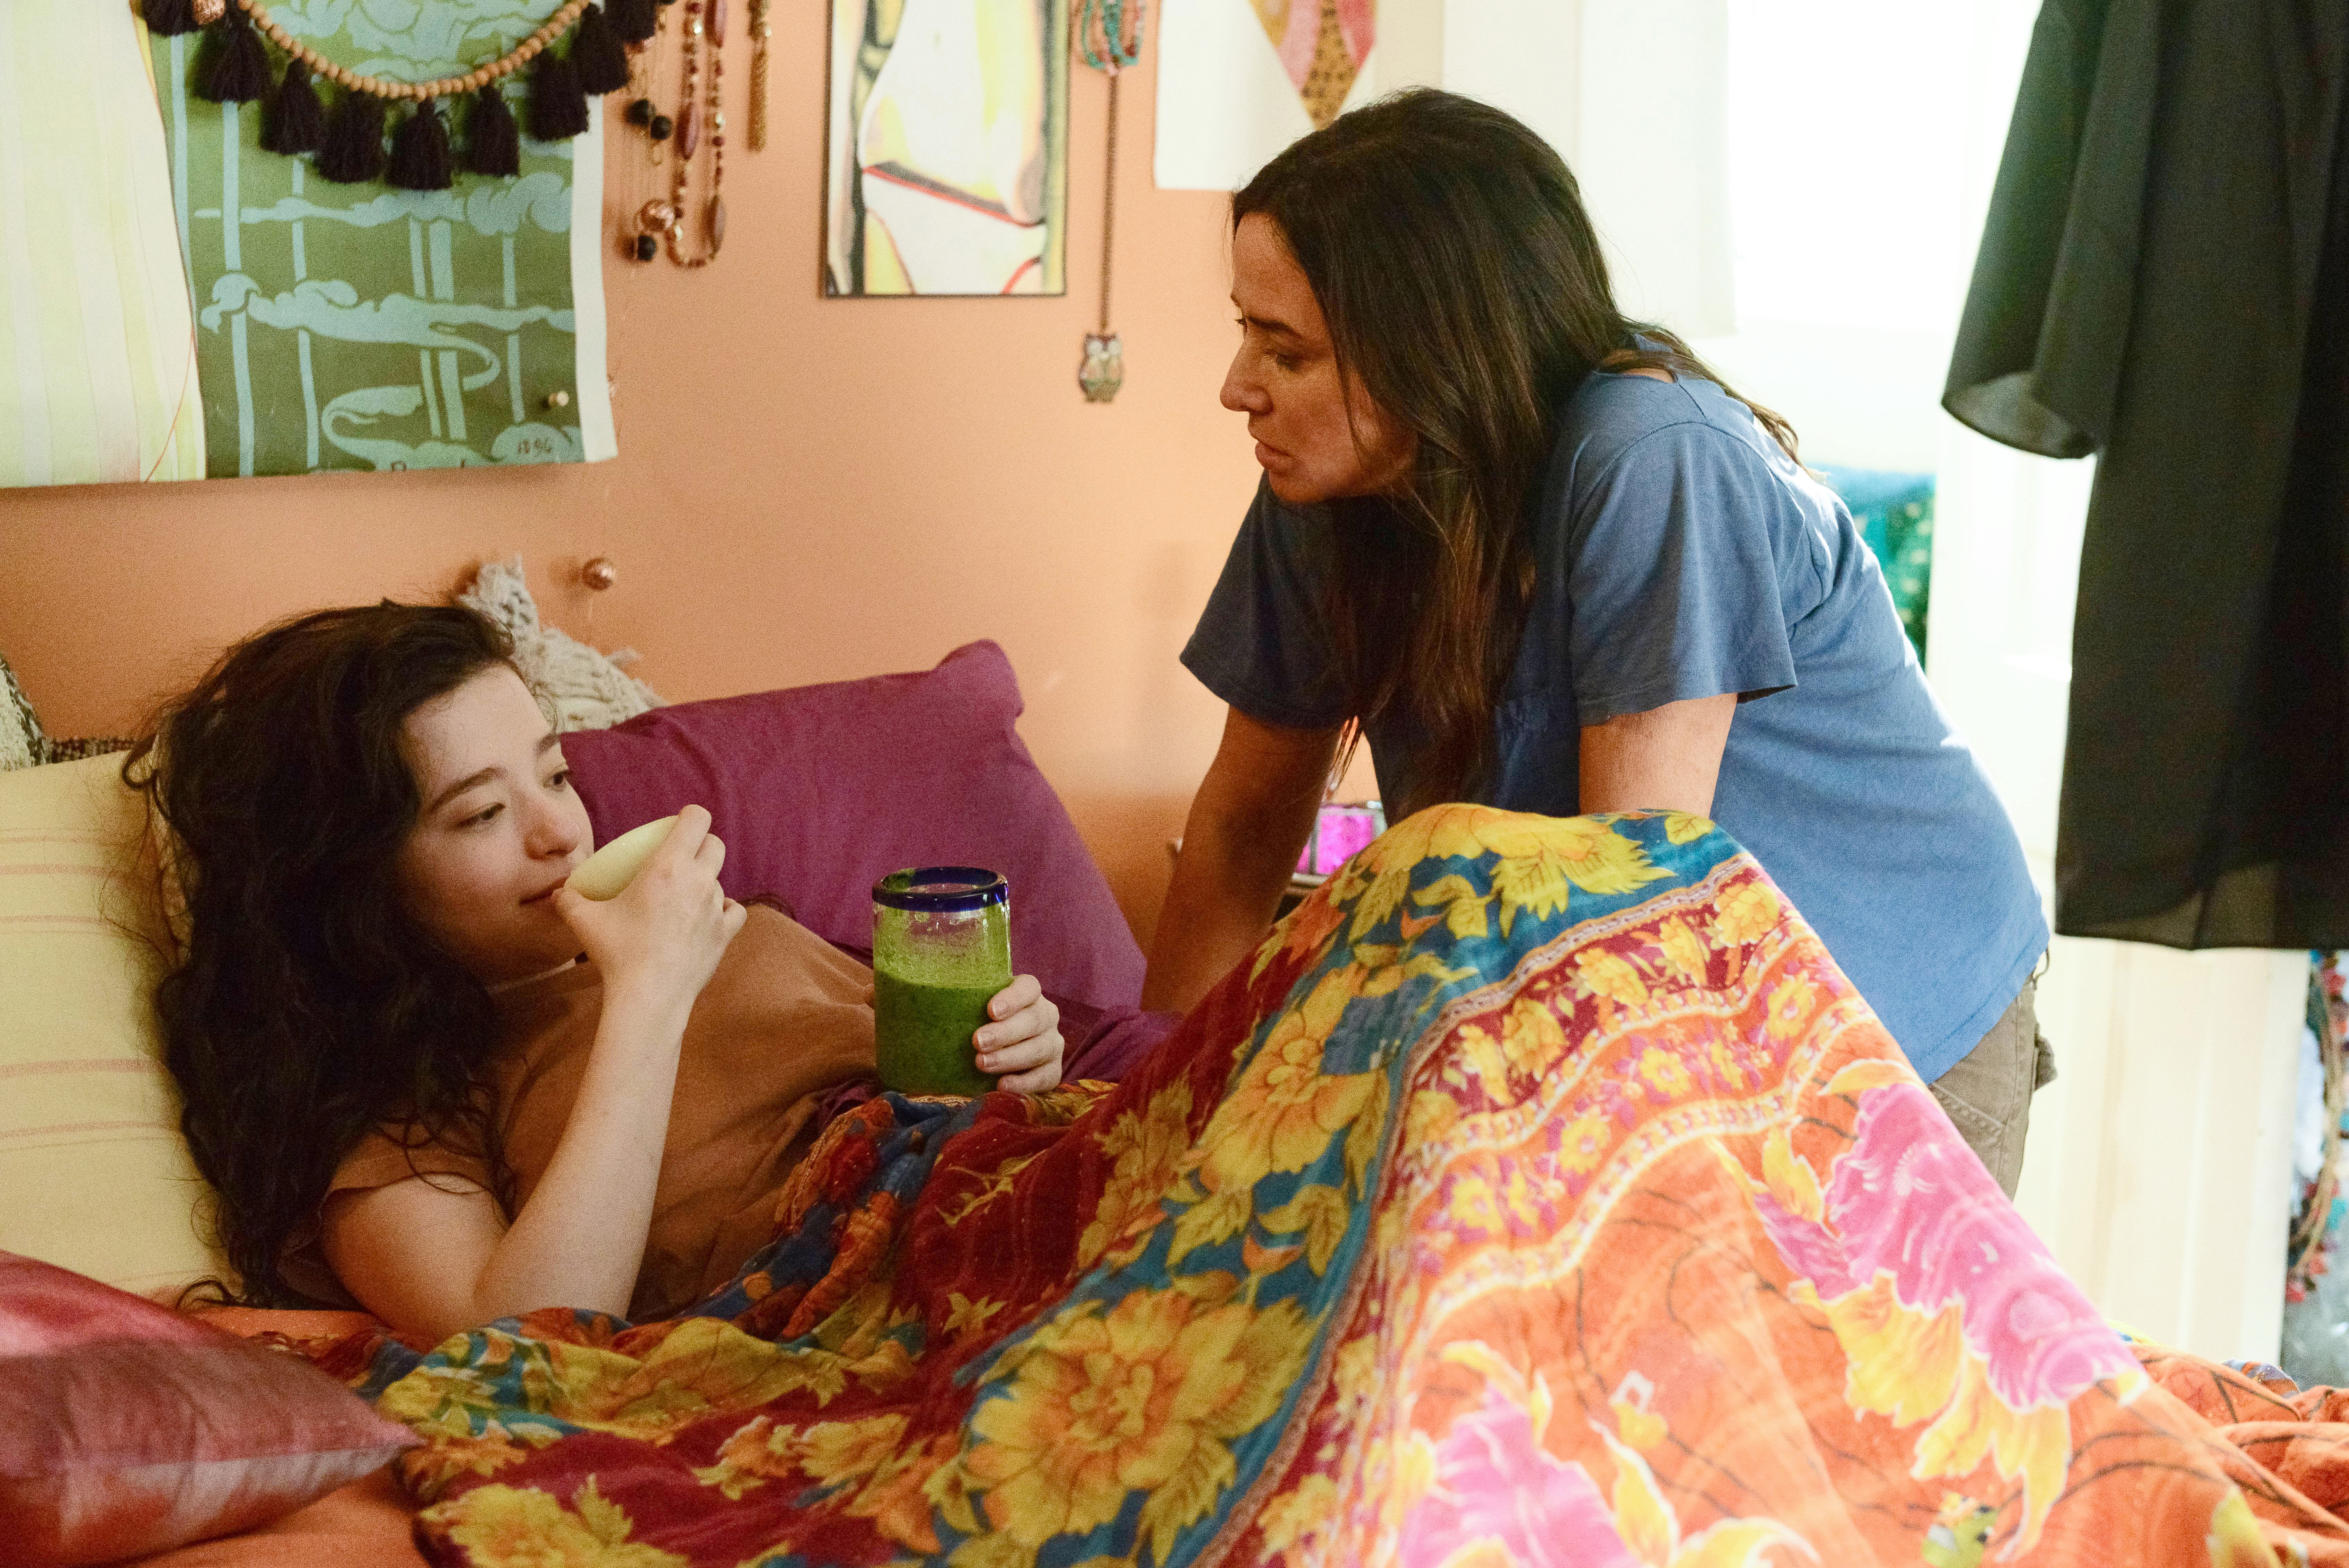 Mikey Madison as Max, and Pamela Adlon as Sam Fox in the season finale of 'Better Things'.